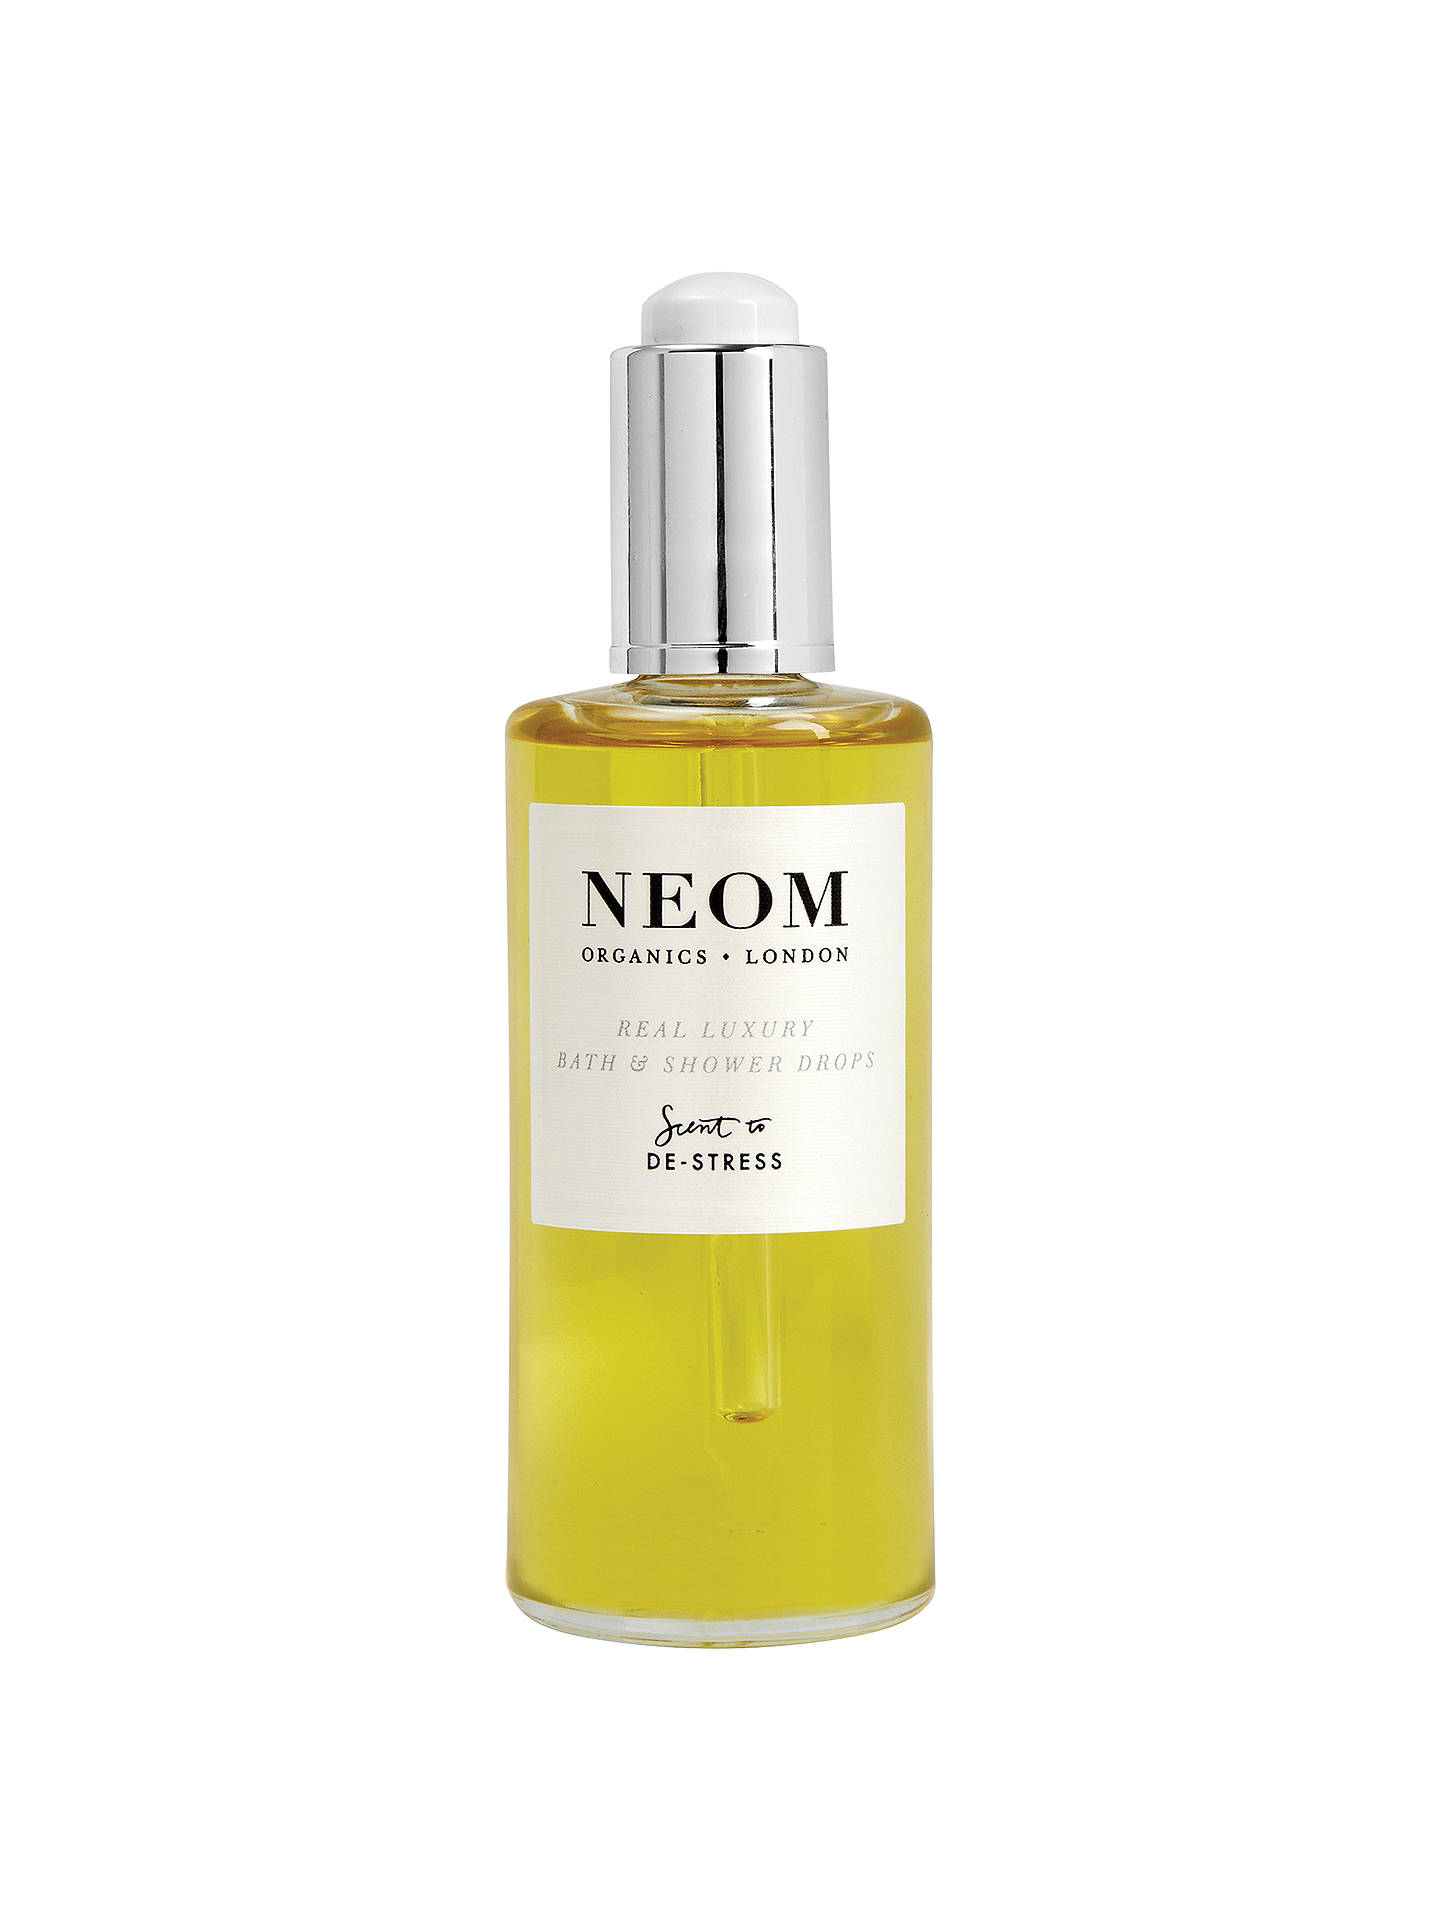 Buy Neom Organics London Real Luxury Bath & Shower Drops, 100ml Online at johnlewis.com